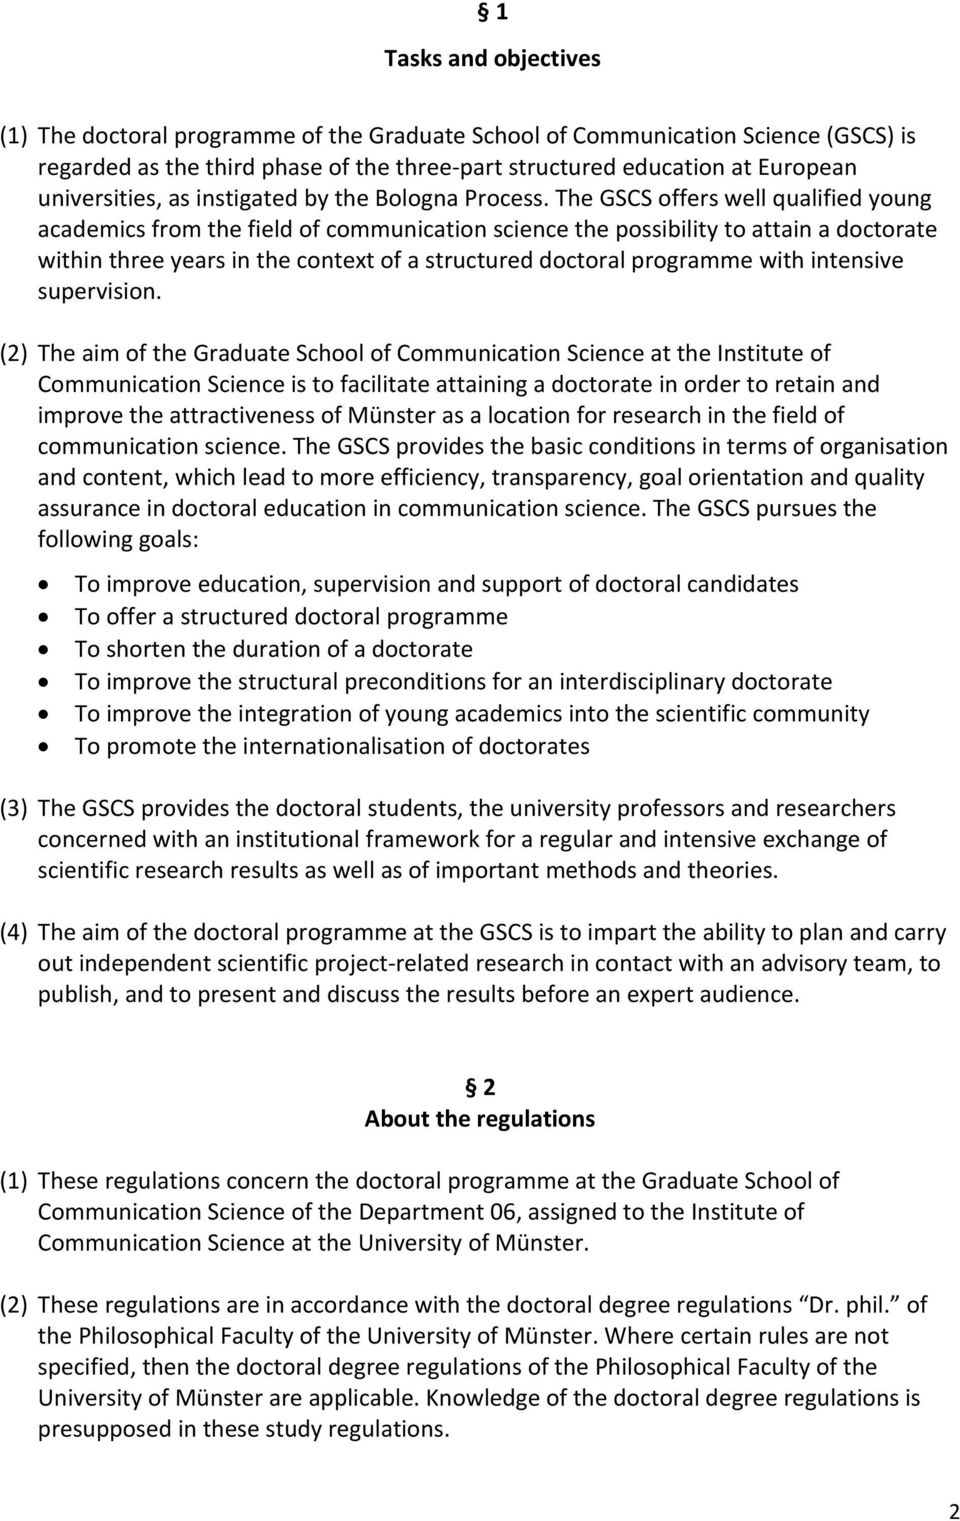 The GSCS offers well qualified young academics from the field of communication science the possibility to attain a doctorate within three years in the context of a structured doctoral programme with